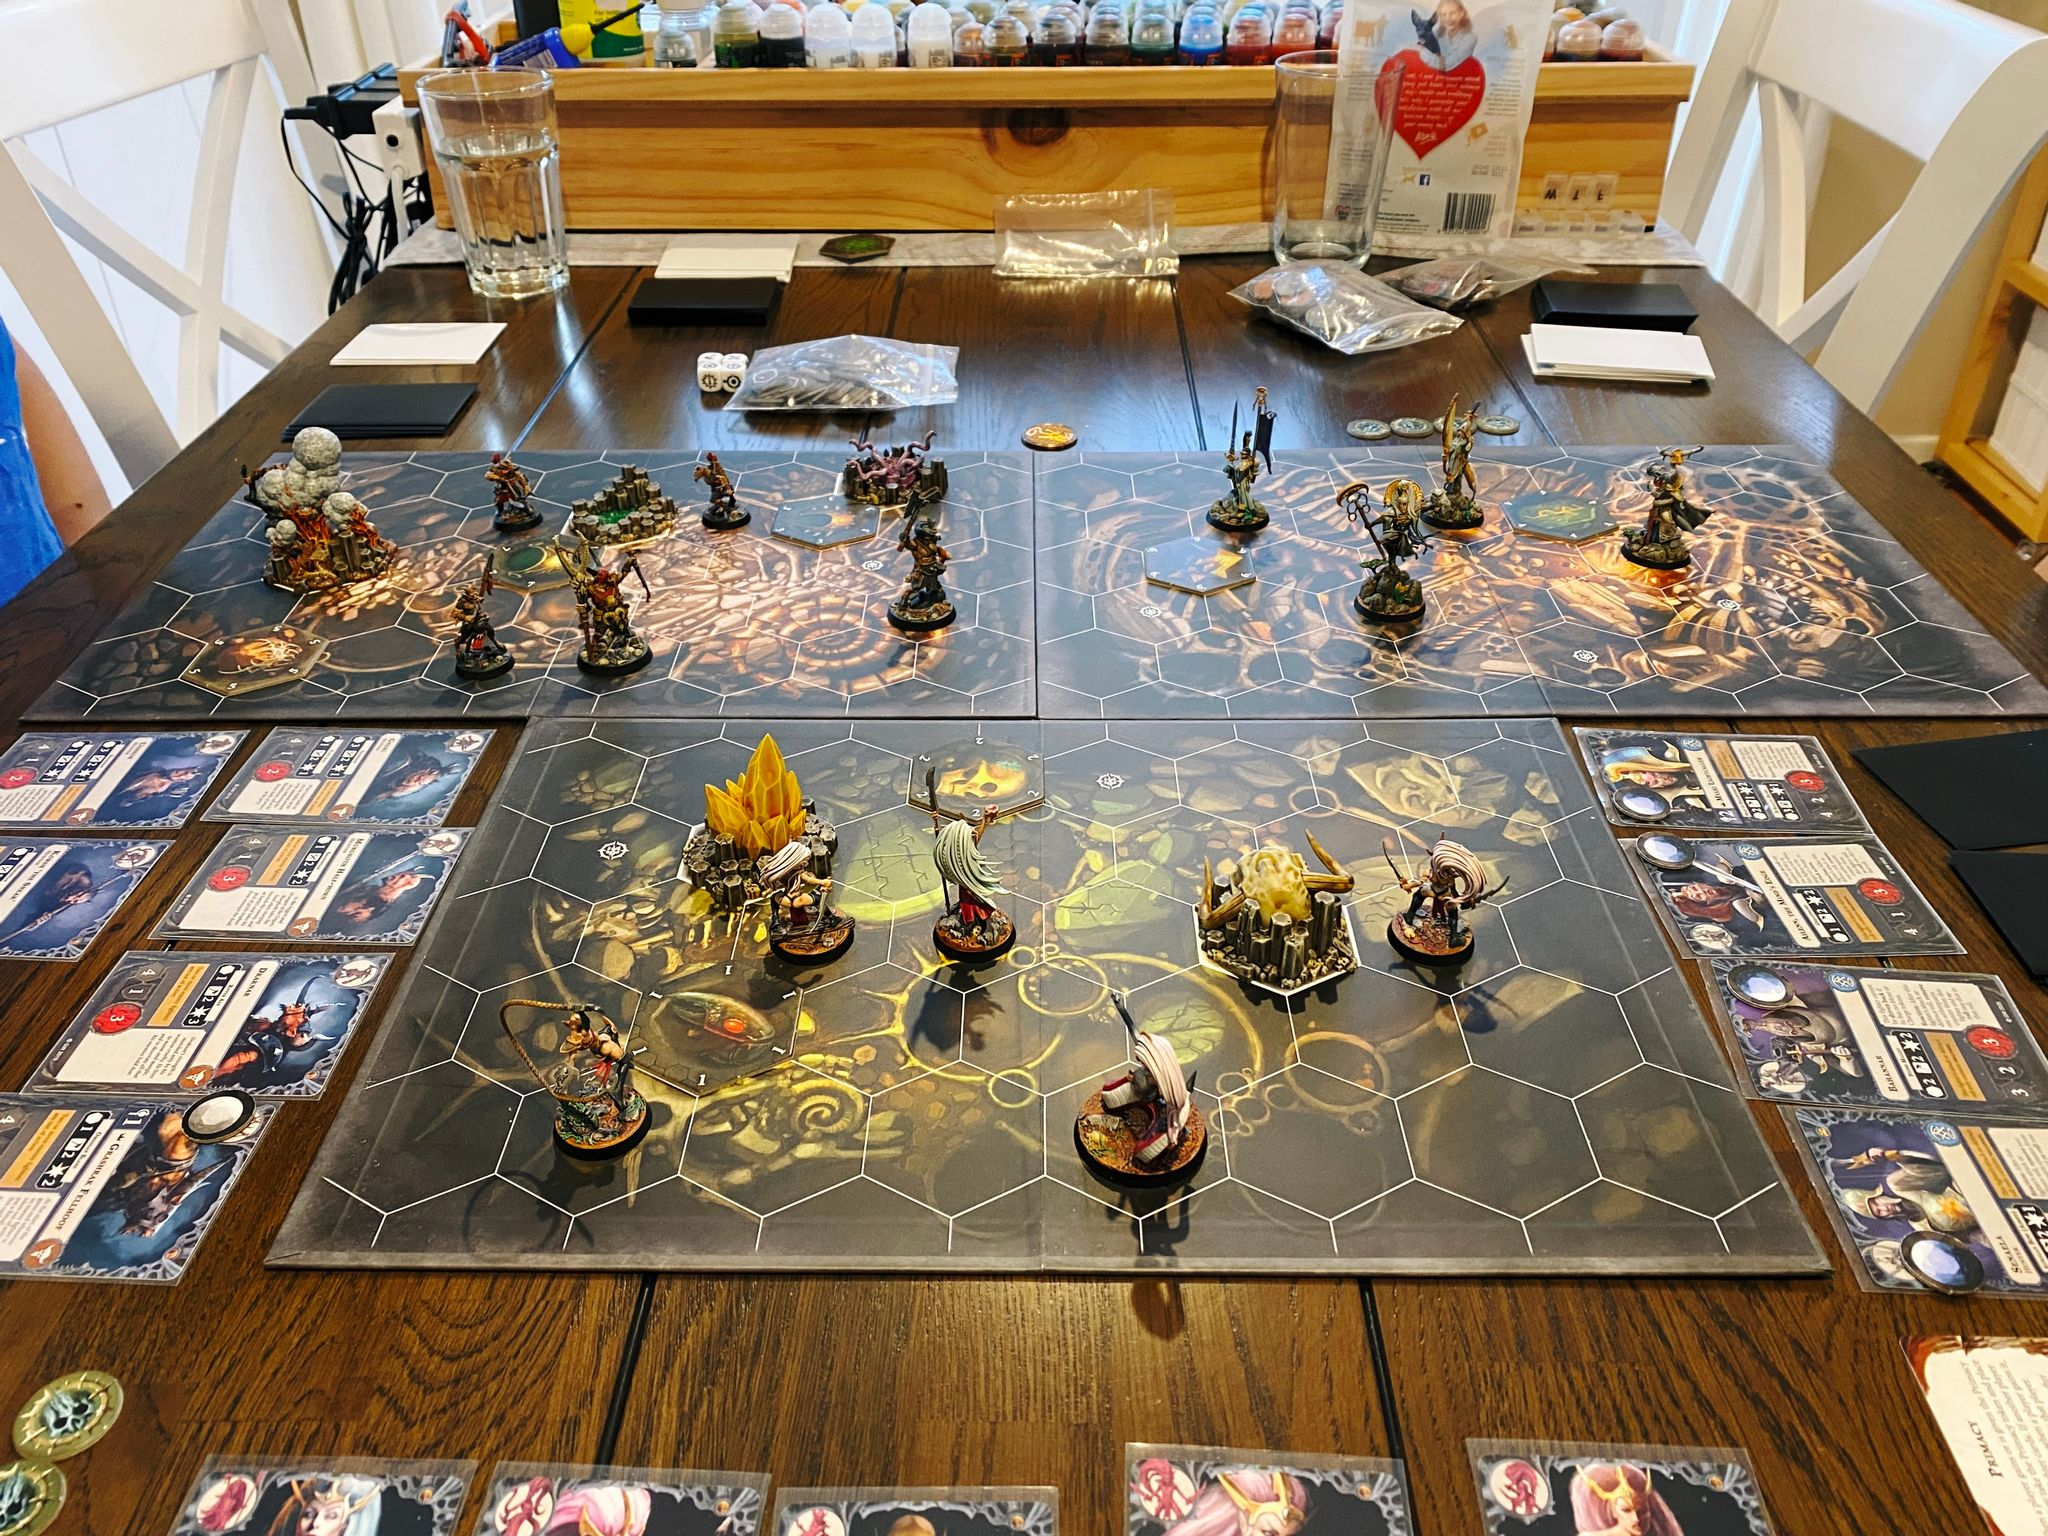 A photo of a three-player game of Warhammer Underworlds. Myari's Purifiers vs. Morgwaeth's Blade-coven vs. Grashrak's Despoilers. Kristina won with Myari's Purifiers.